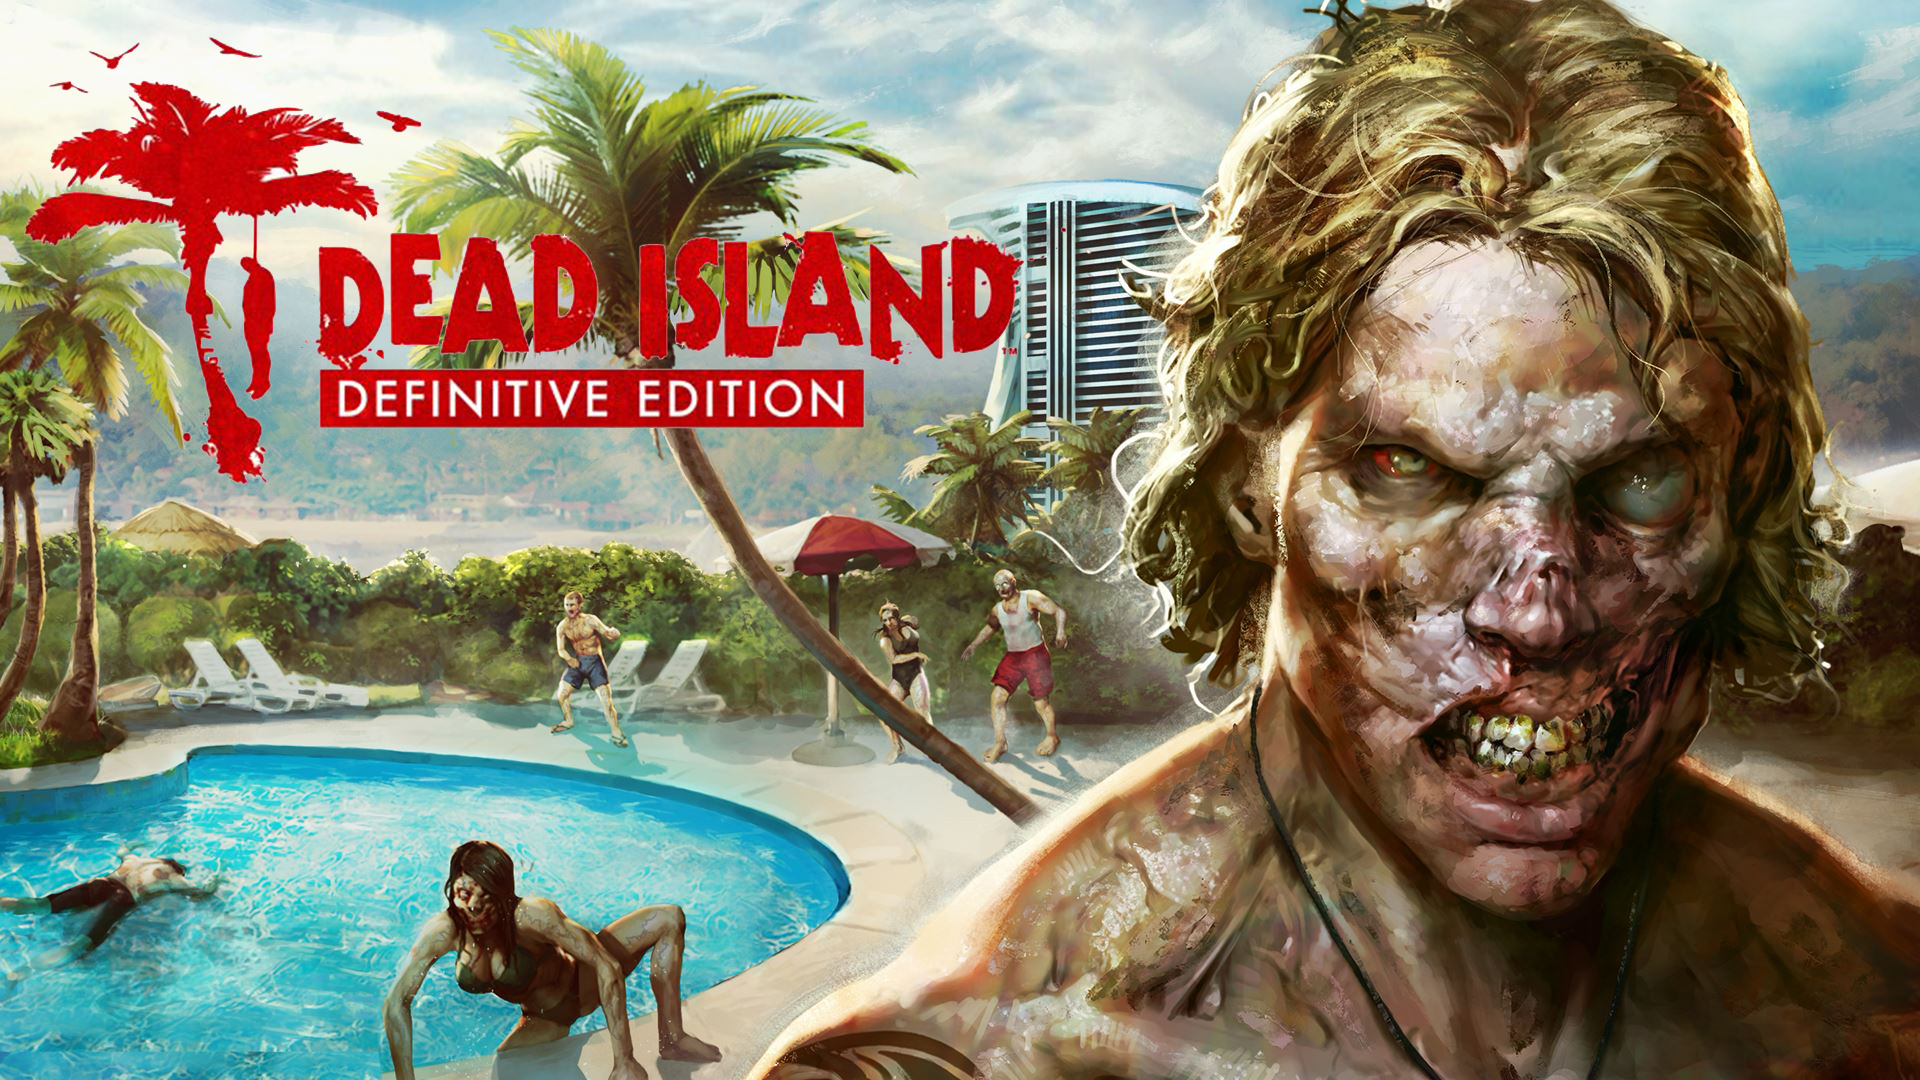 Dead Island Definitive Dition Content